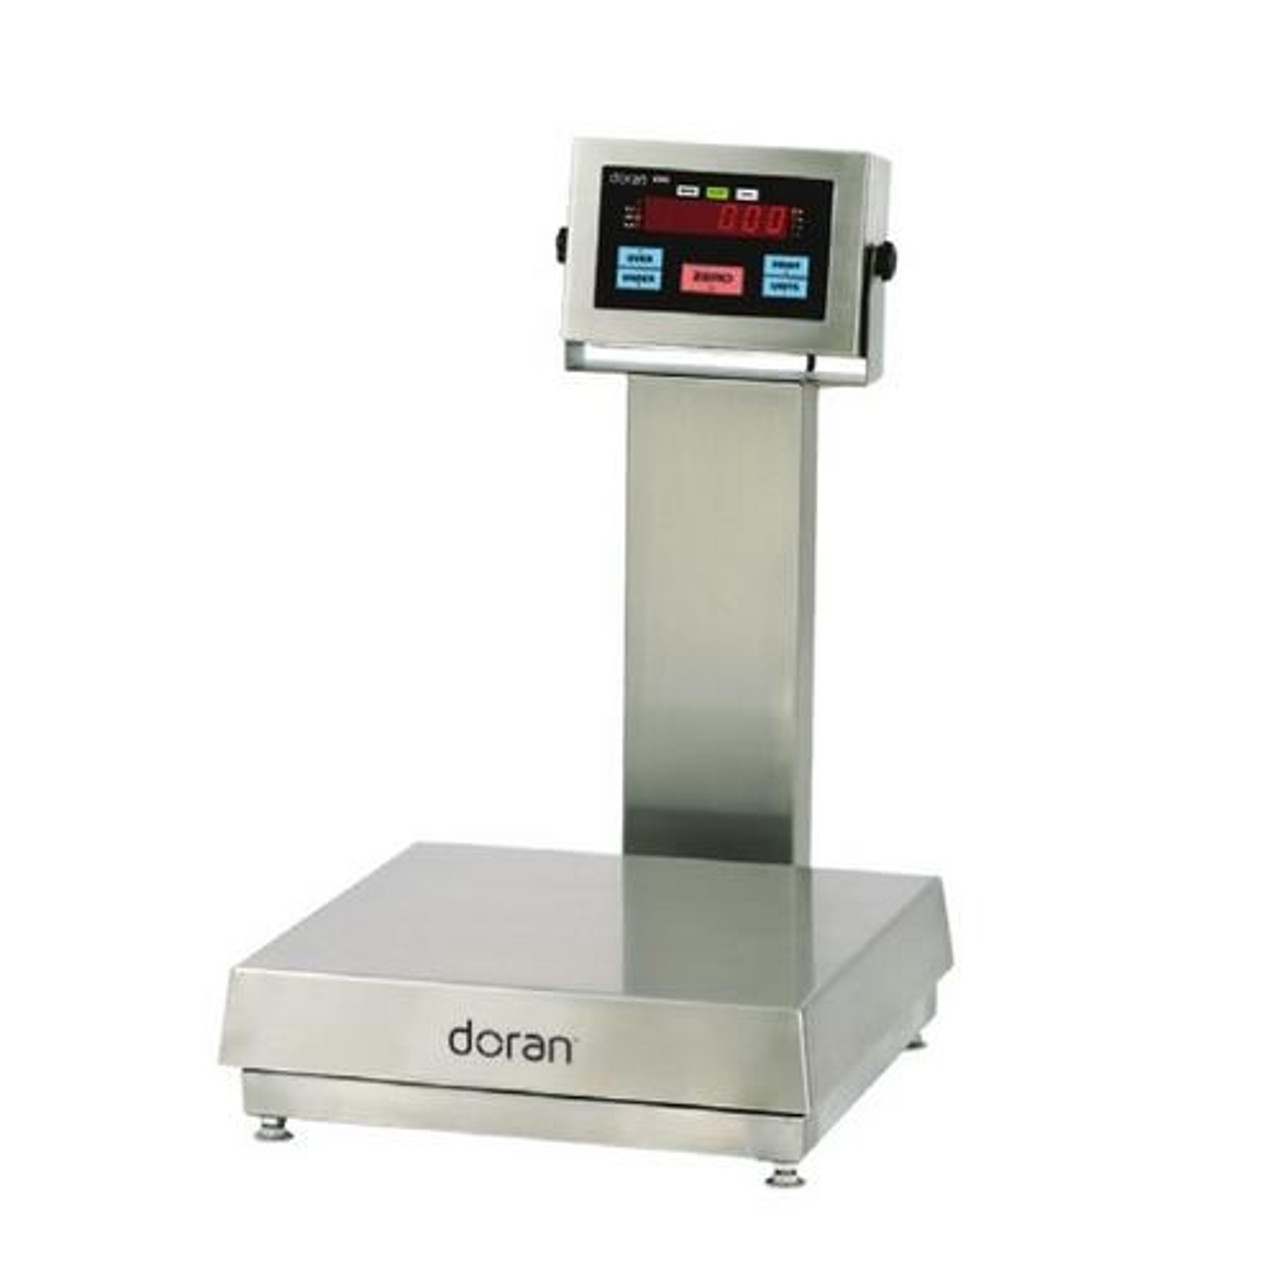 "Doran 4300 Stainless Steel Checkweigh Scale - 20"" column"